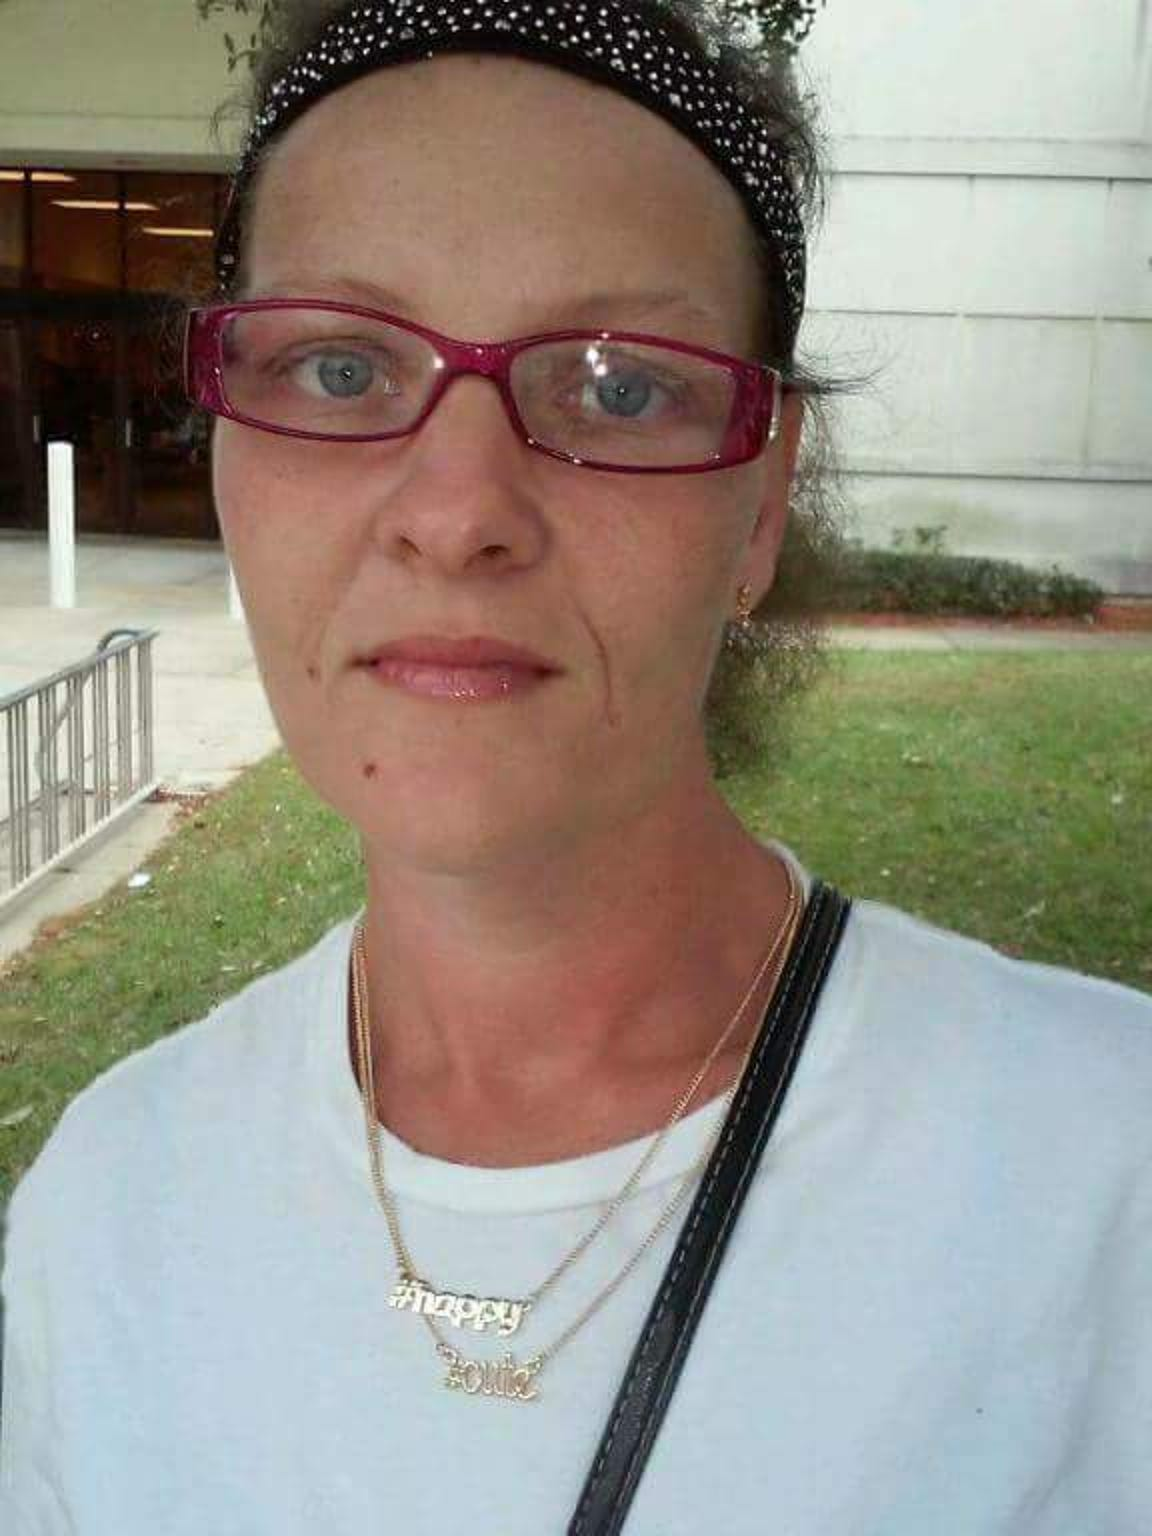 Tiffany Nance, 33, was killed in January. Bryon Massey has been charged with her murder.